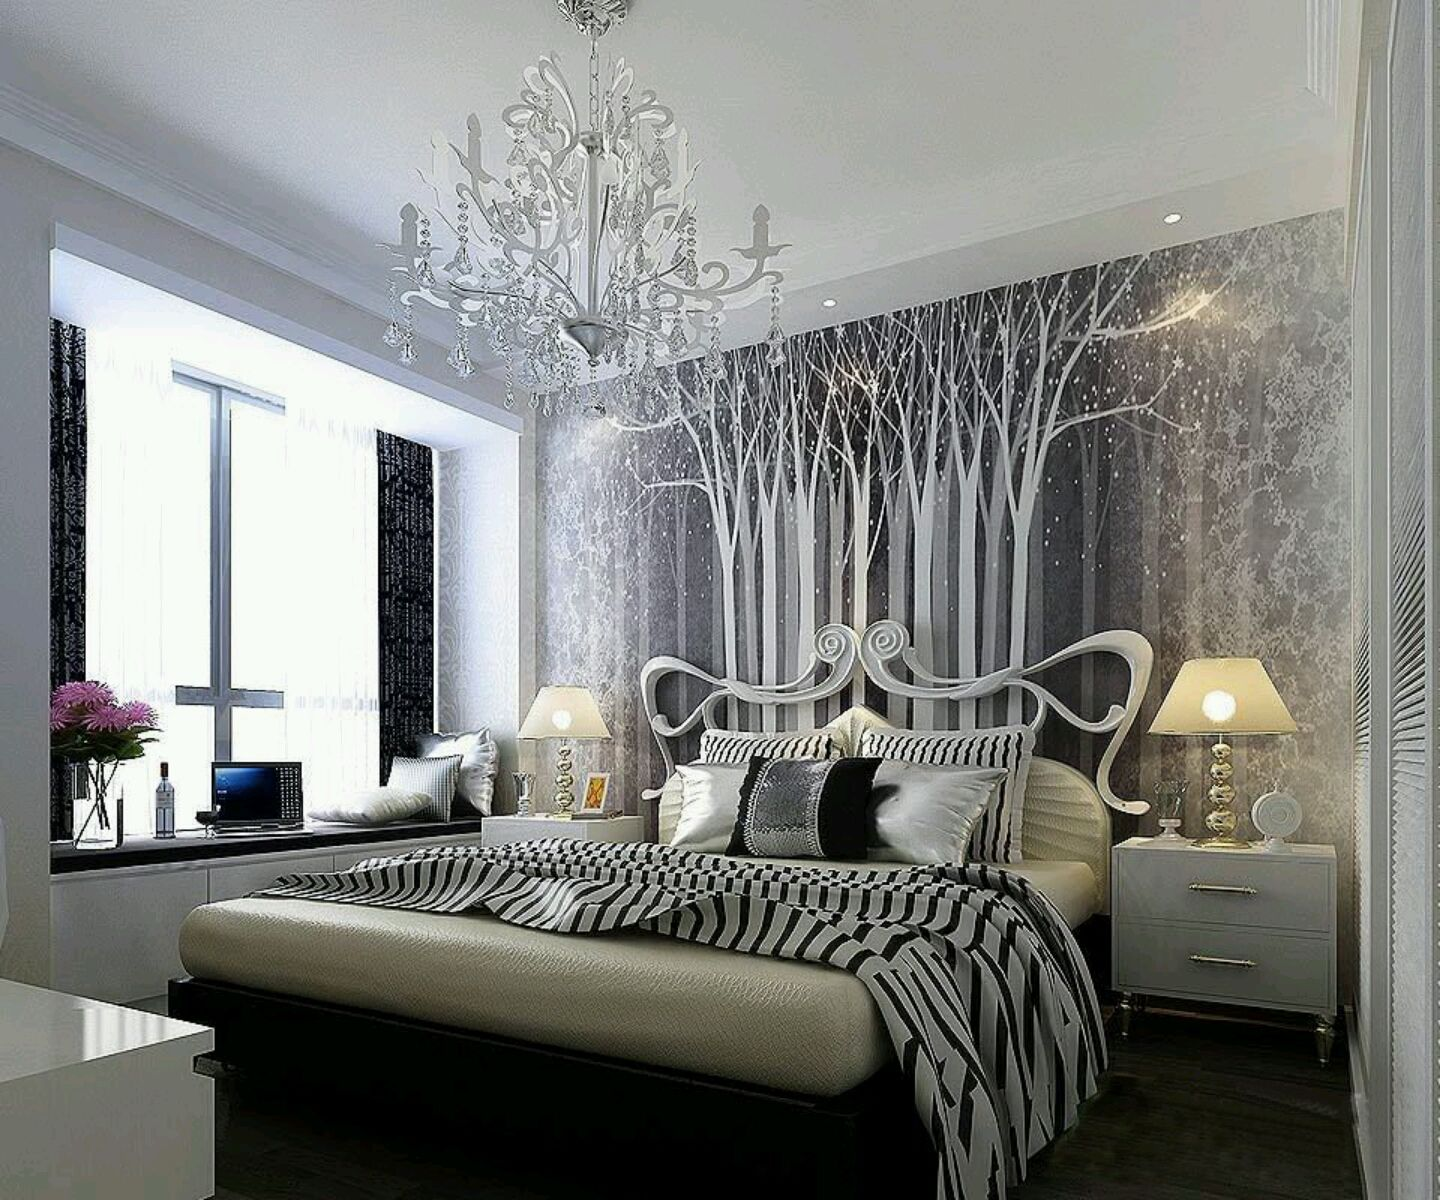 Beautiful bedroom interiors - Modern Bed Designs Beautiful Bedrooms Designs Ideas